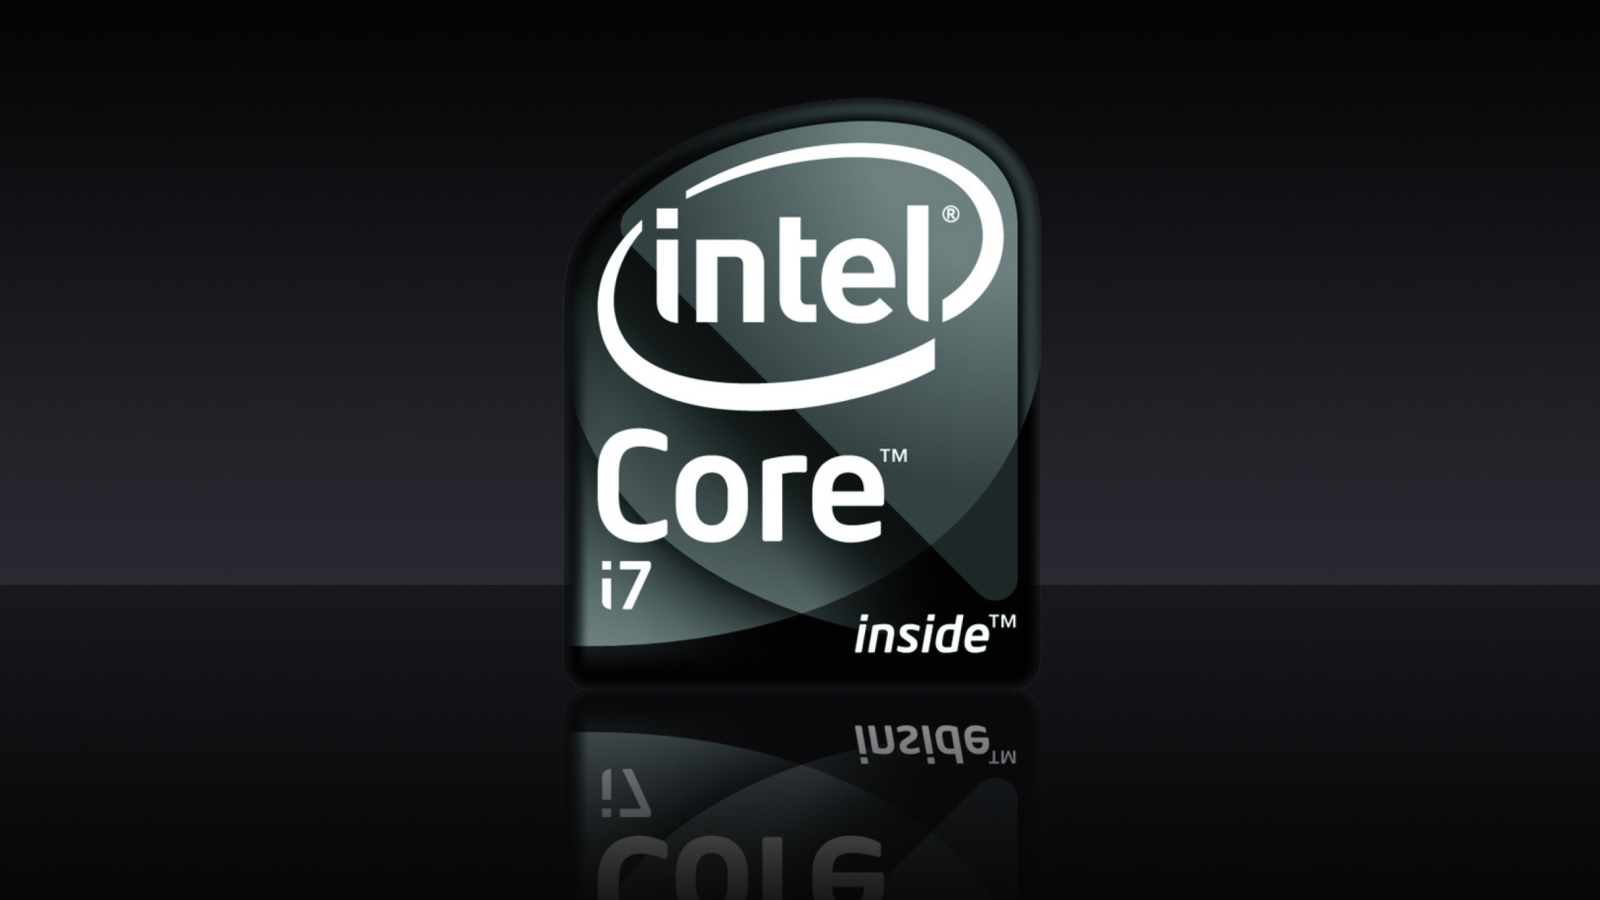 Intel Core I7 wallpaper 1600x900